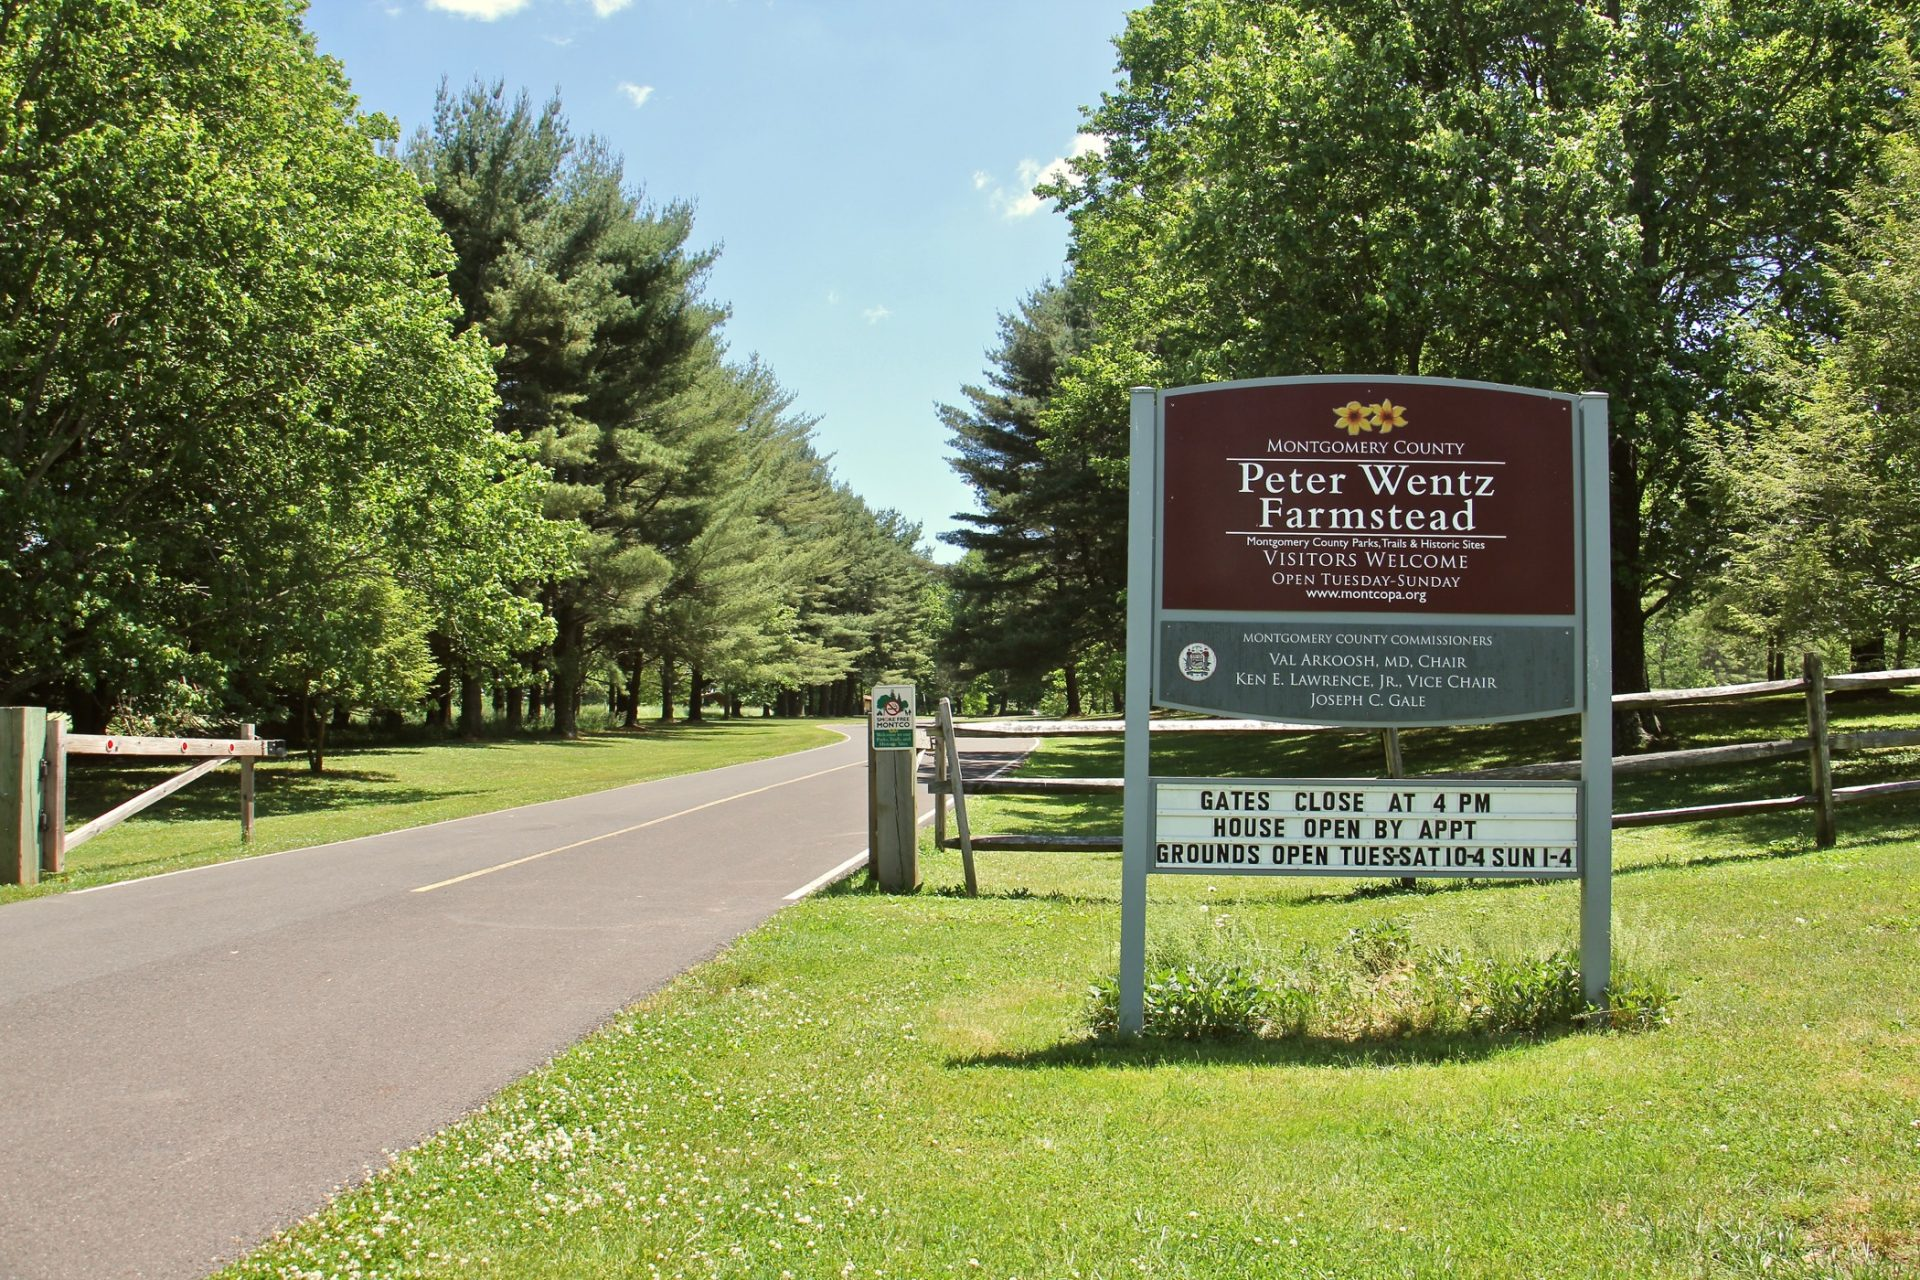 Peter Wentz Farmstead in Montgomery County has been recognized by the National Parks Service as a National Underground Railroad Network to Freedom historic site.